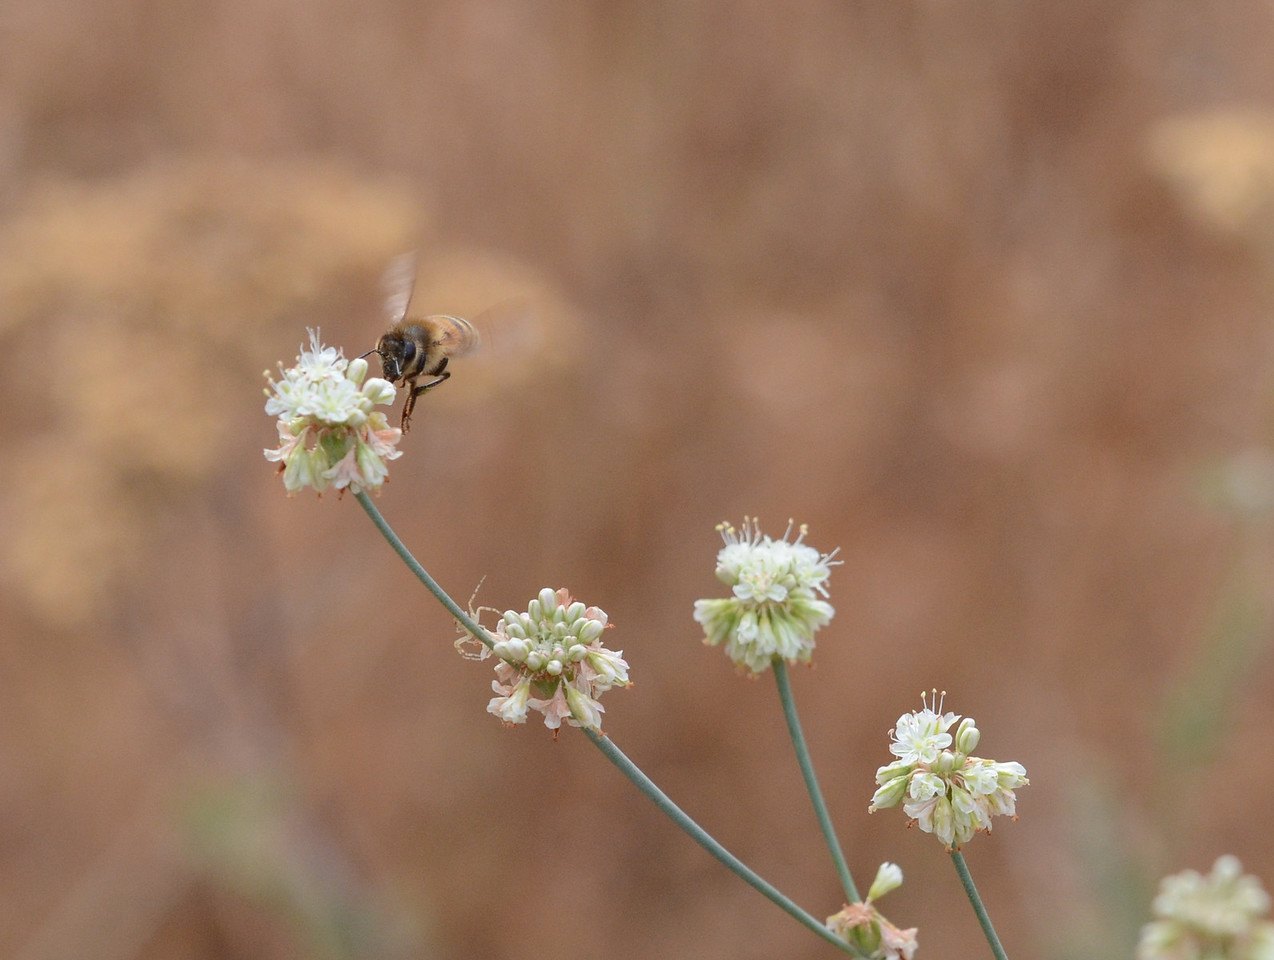 Since the camera records images at almost 5000 pixels by 4000 pixels, I can zoom in without losing detail.  Now I can begin to see some pale legs an inch or two below the bee,